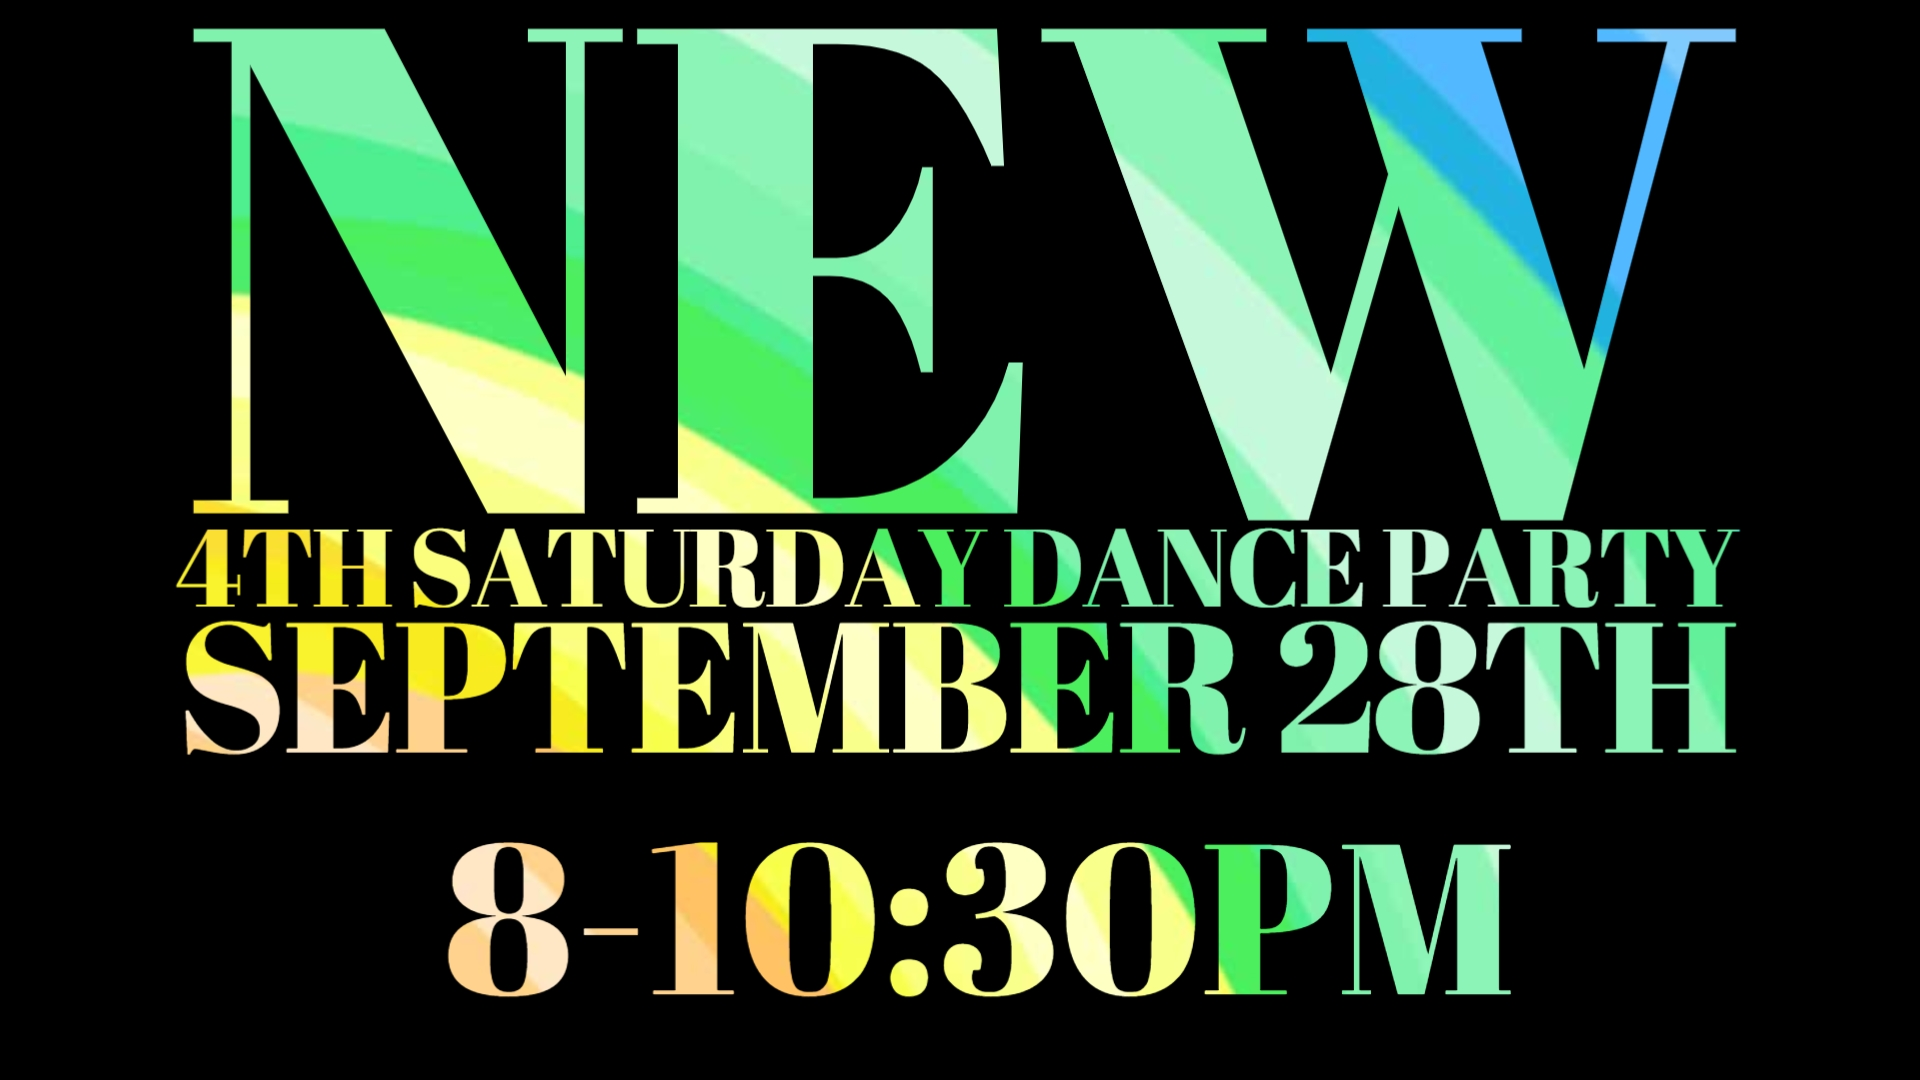 New 4th Saturday Dance Party.jpg